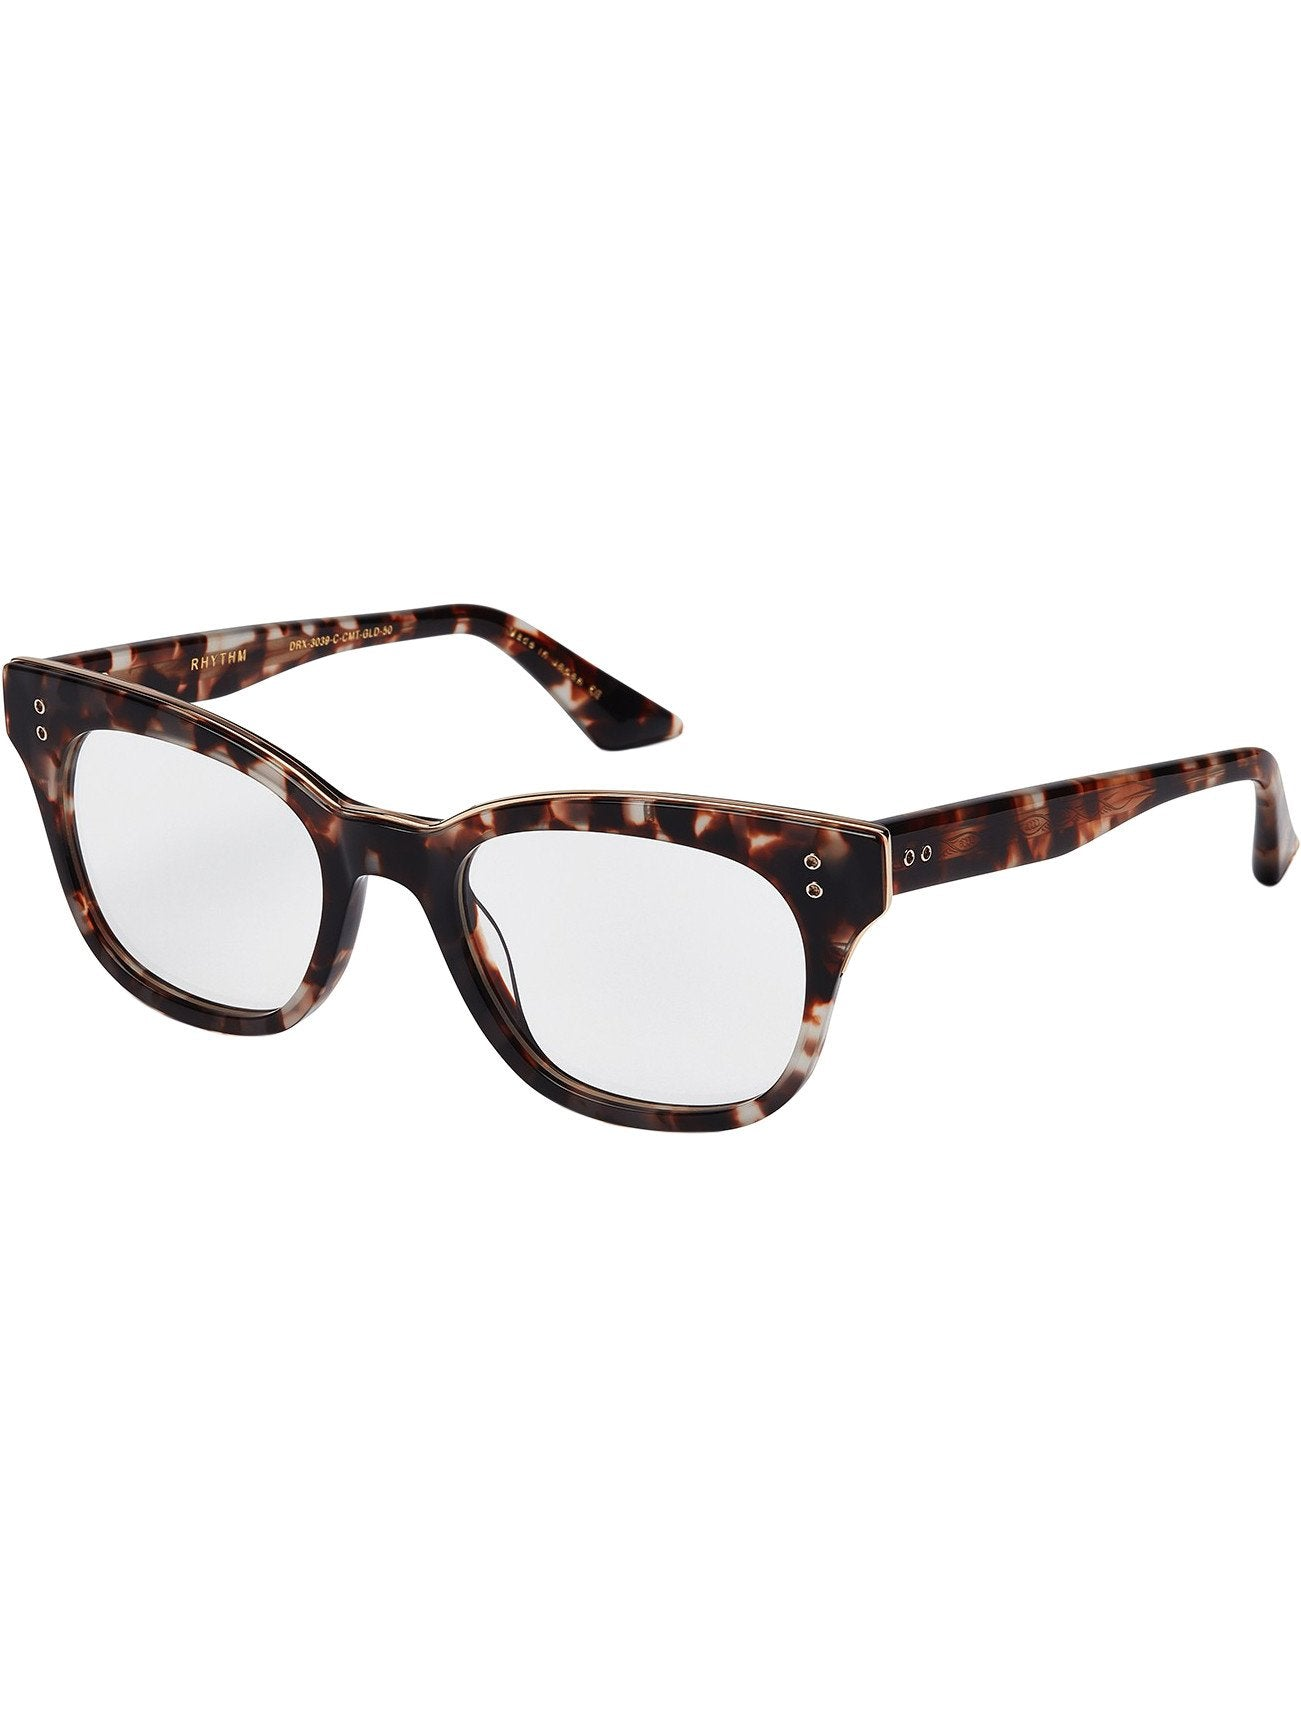 Optical Frame - Dita Rhythm DRX-3039-C Glasses